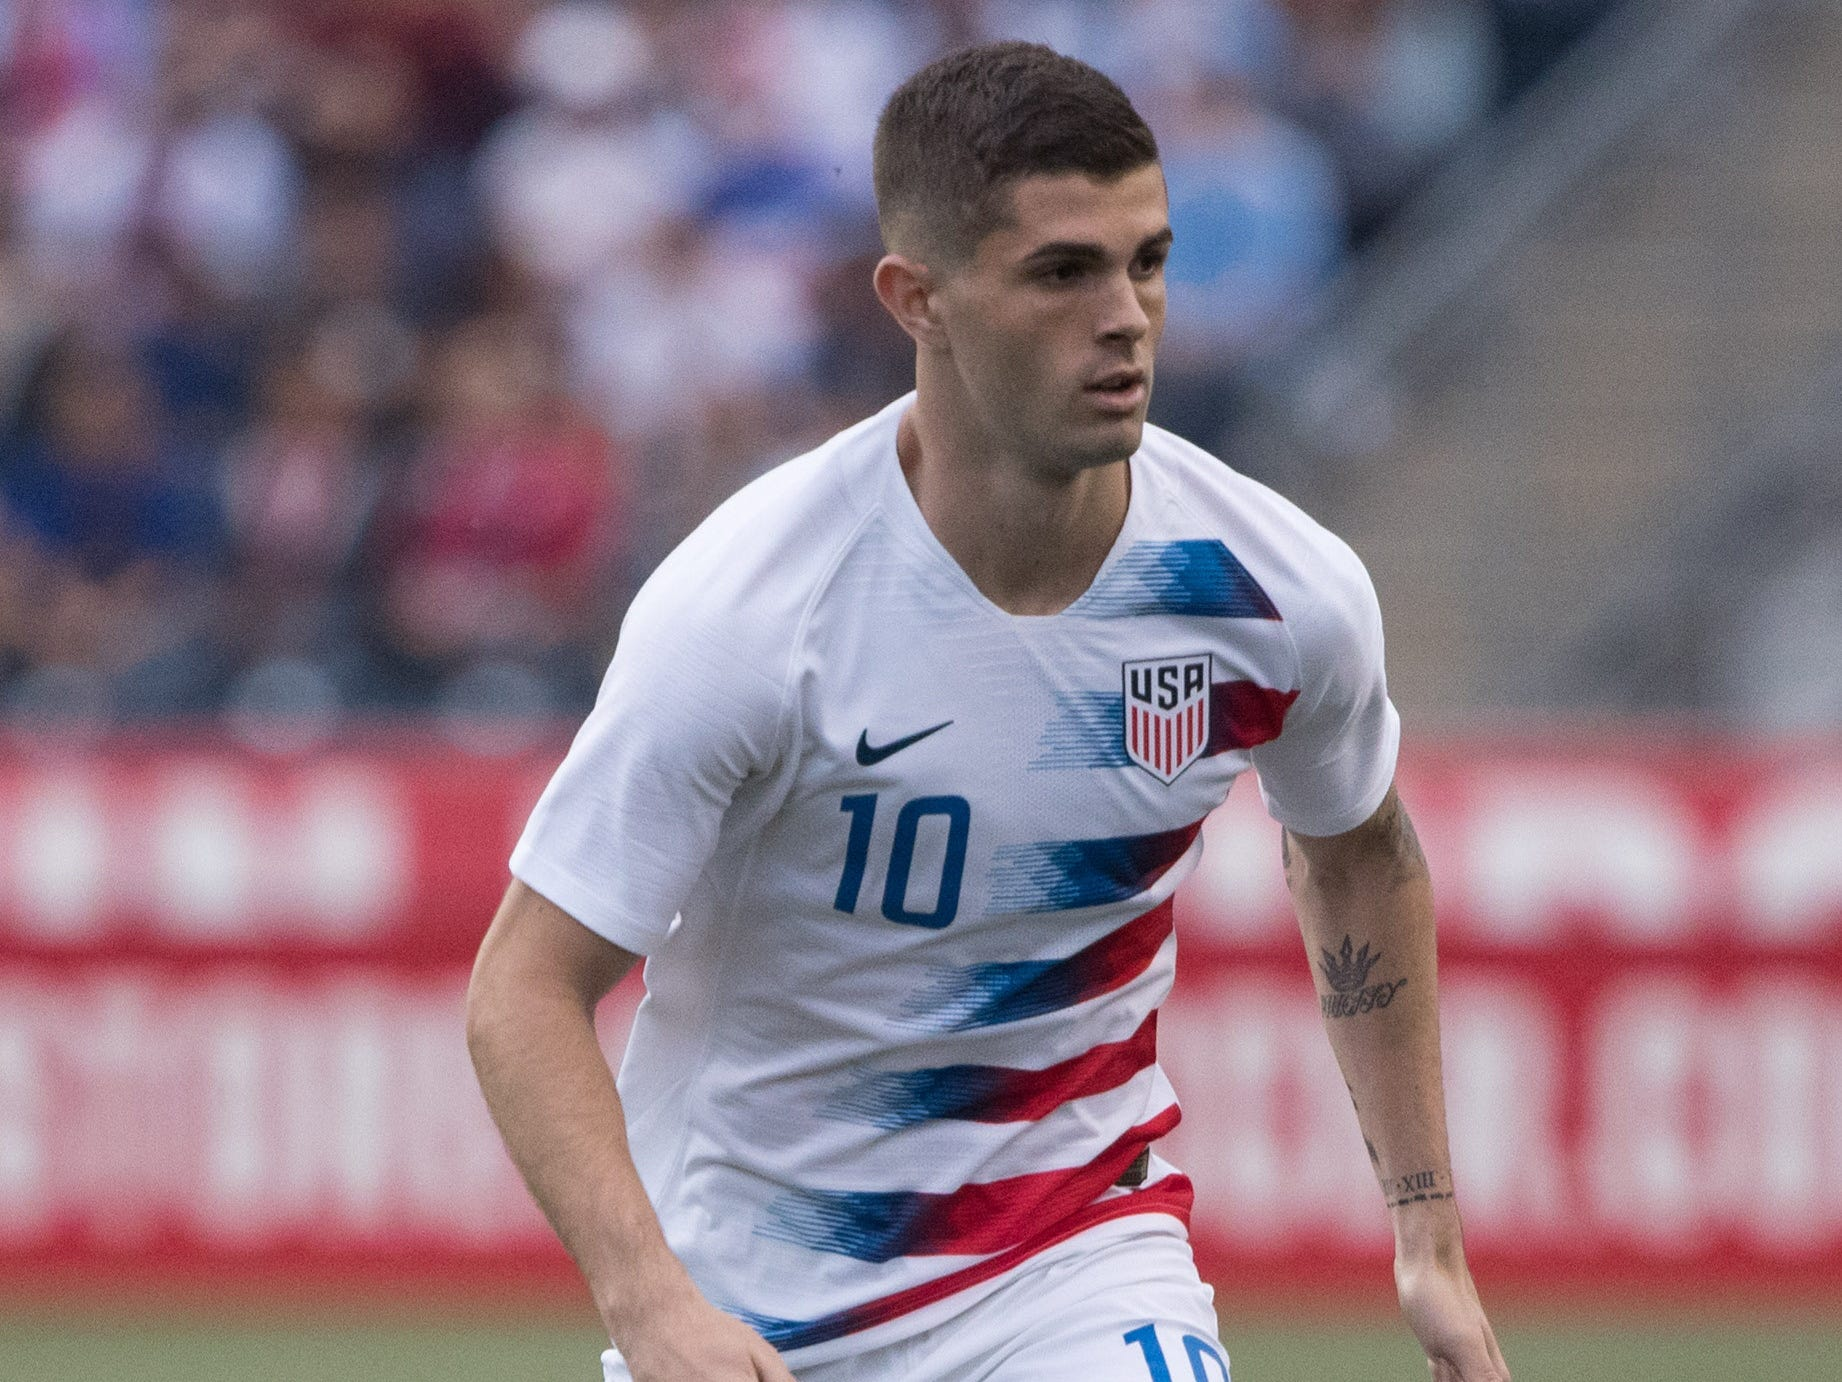 Christian Pulisic scheduled for U.S. soccer team return; Michael Bradley dropped